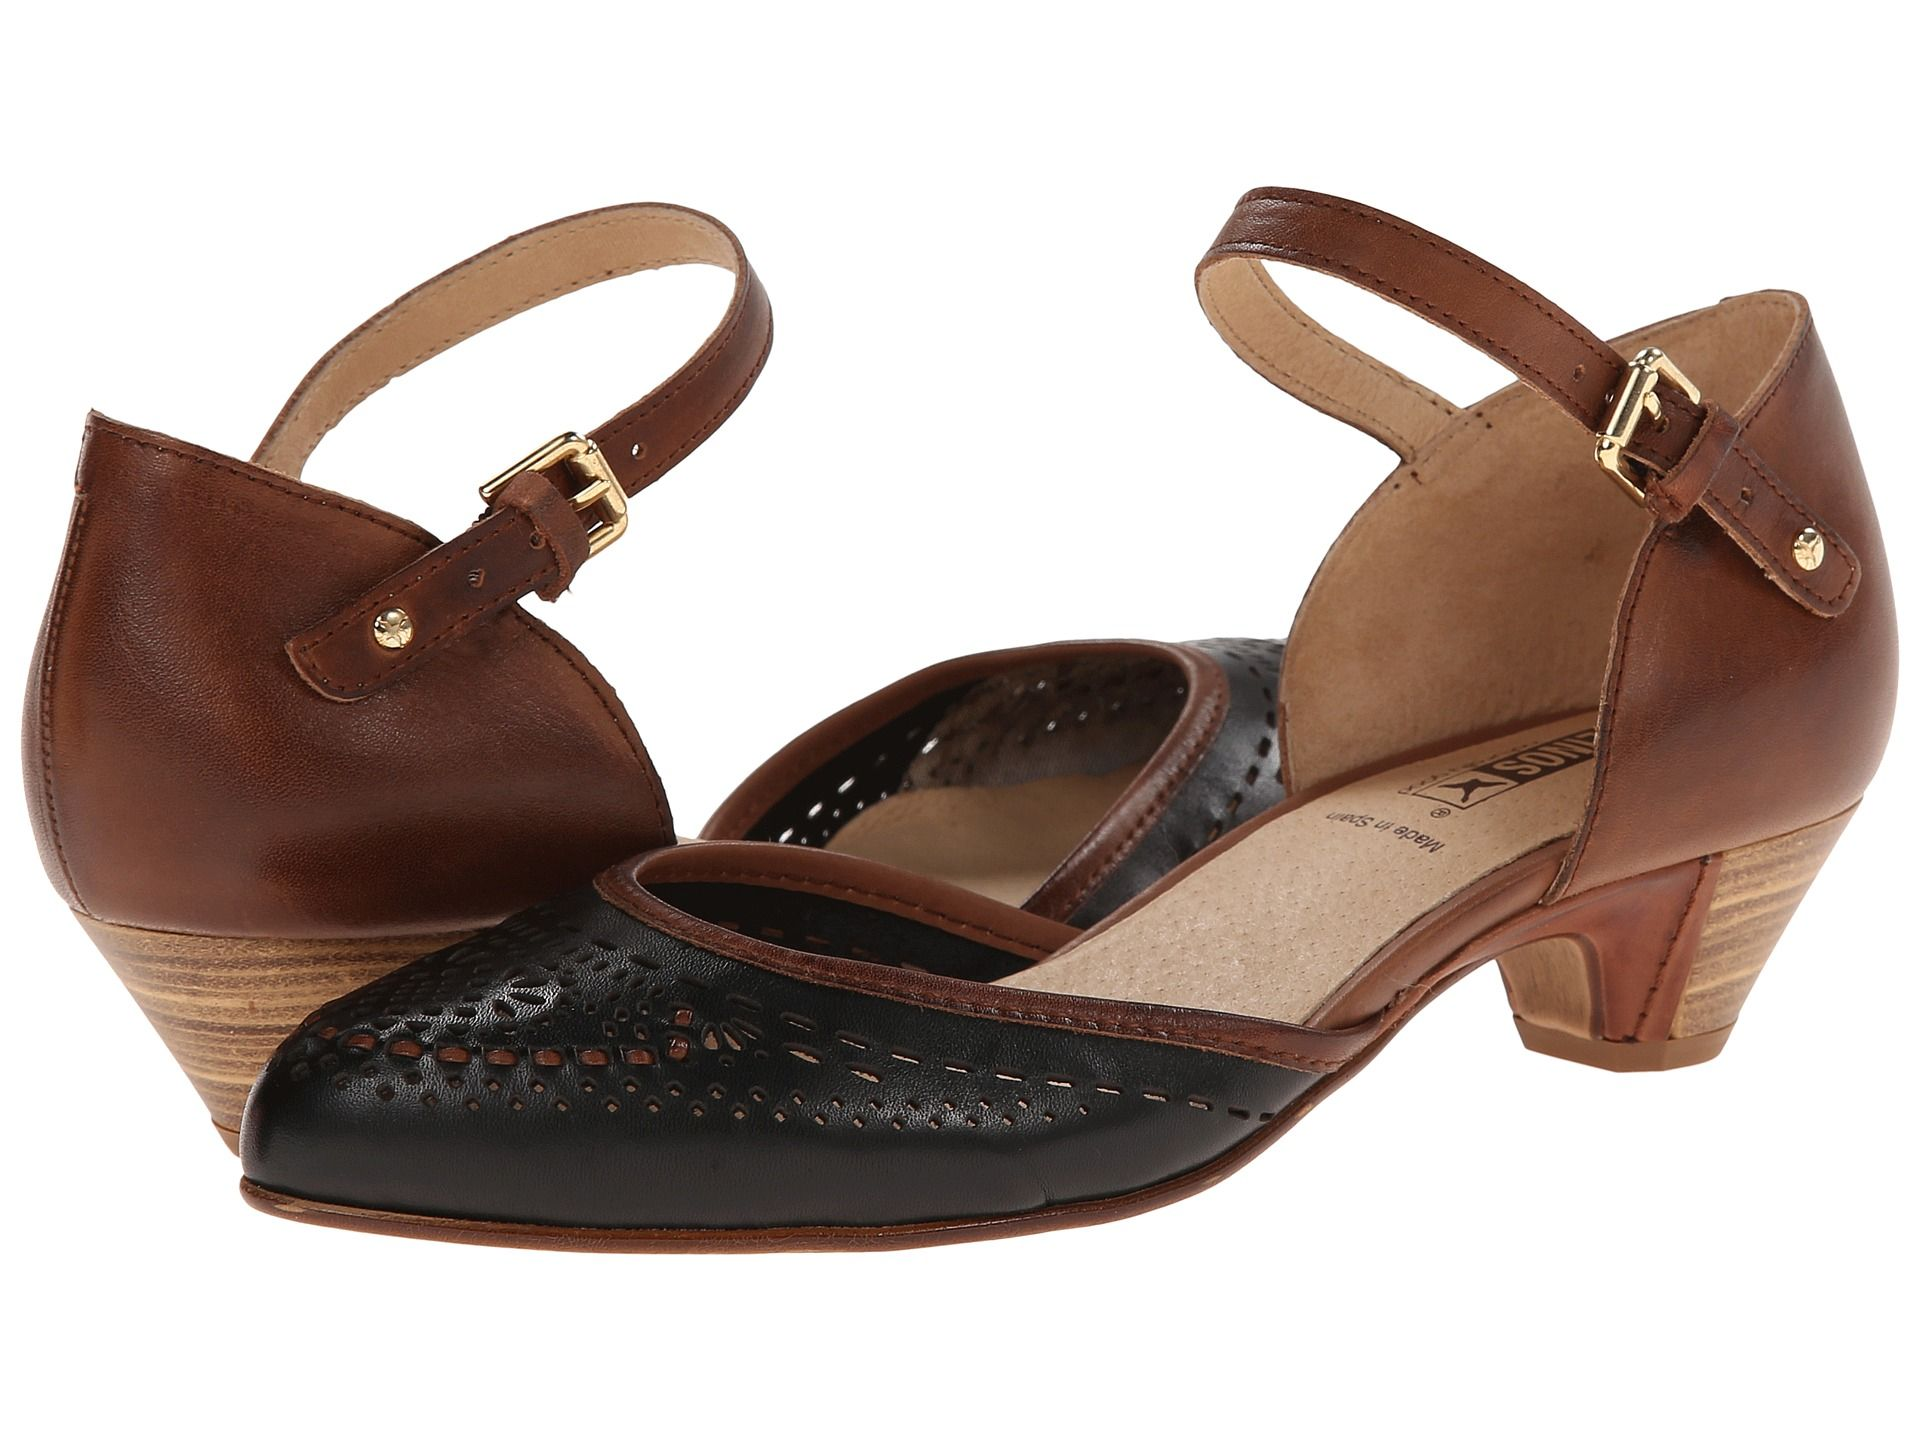 Shop Pikolinos at Zappos and earn cash back with StuffDOT ...